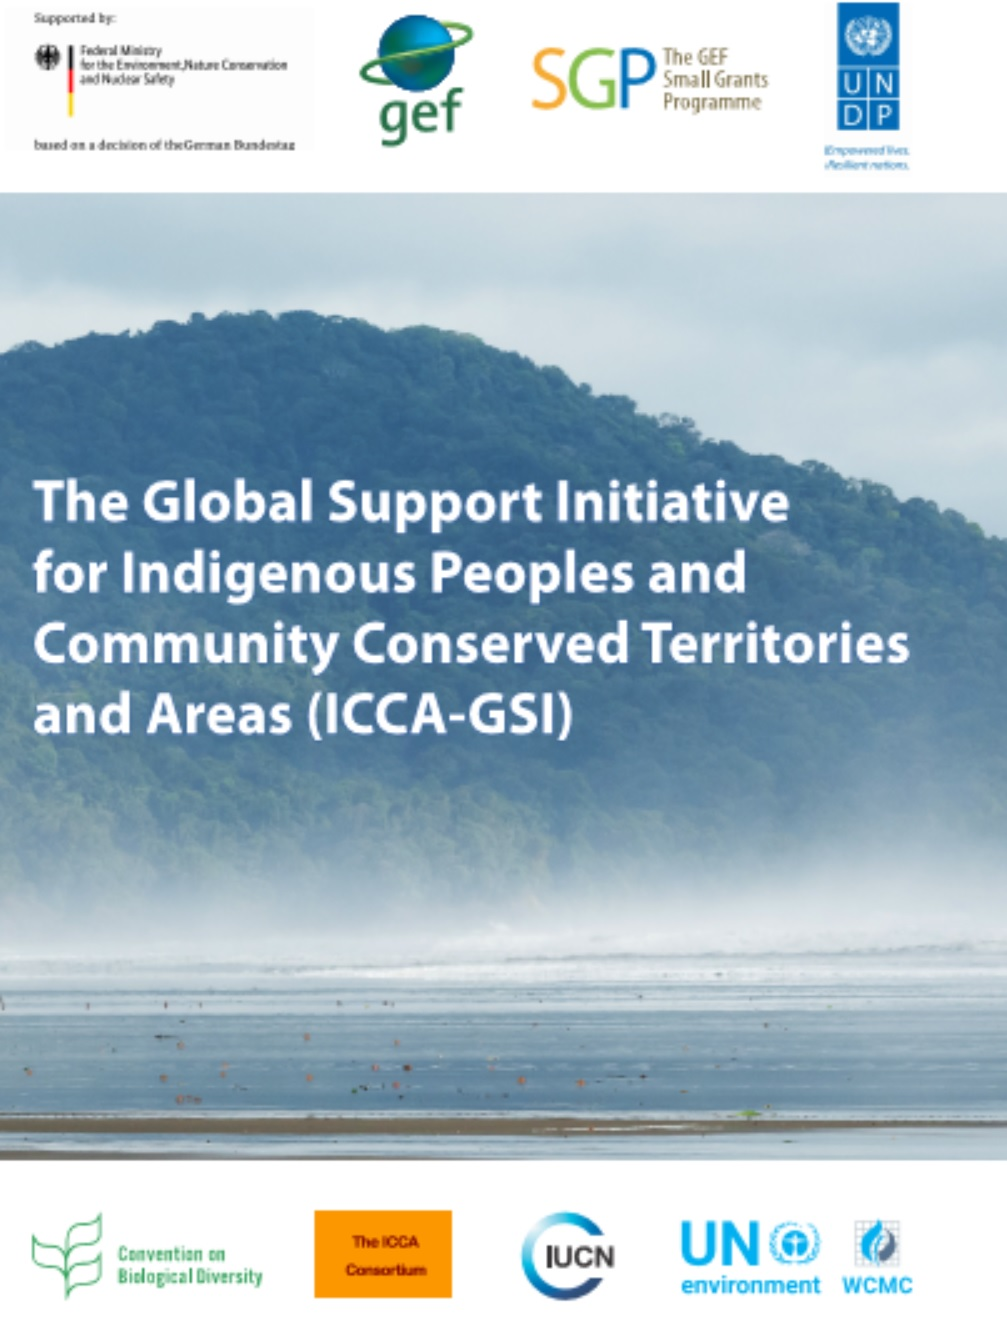 Global Support Initiative to ICCAs Brochure